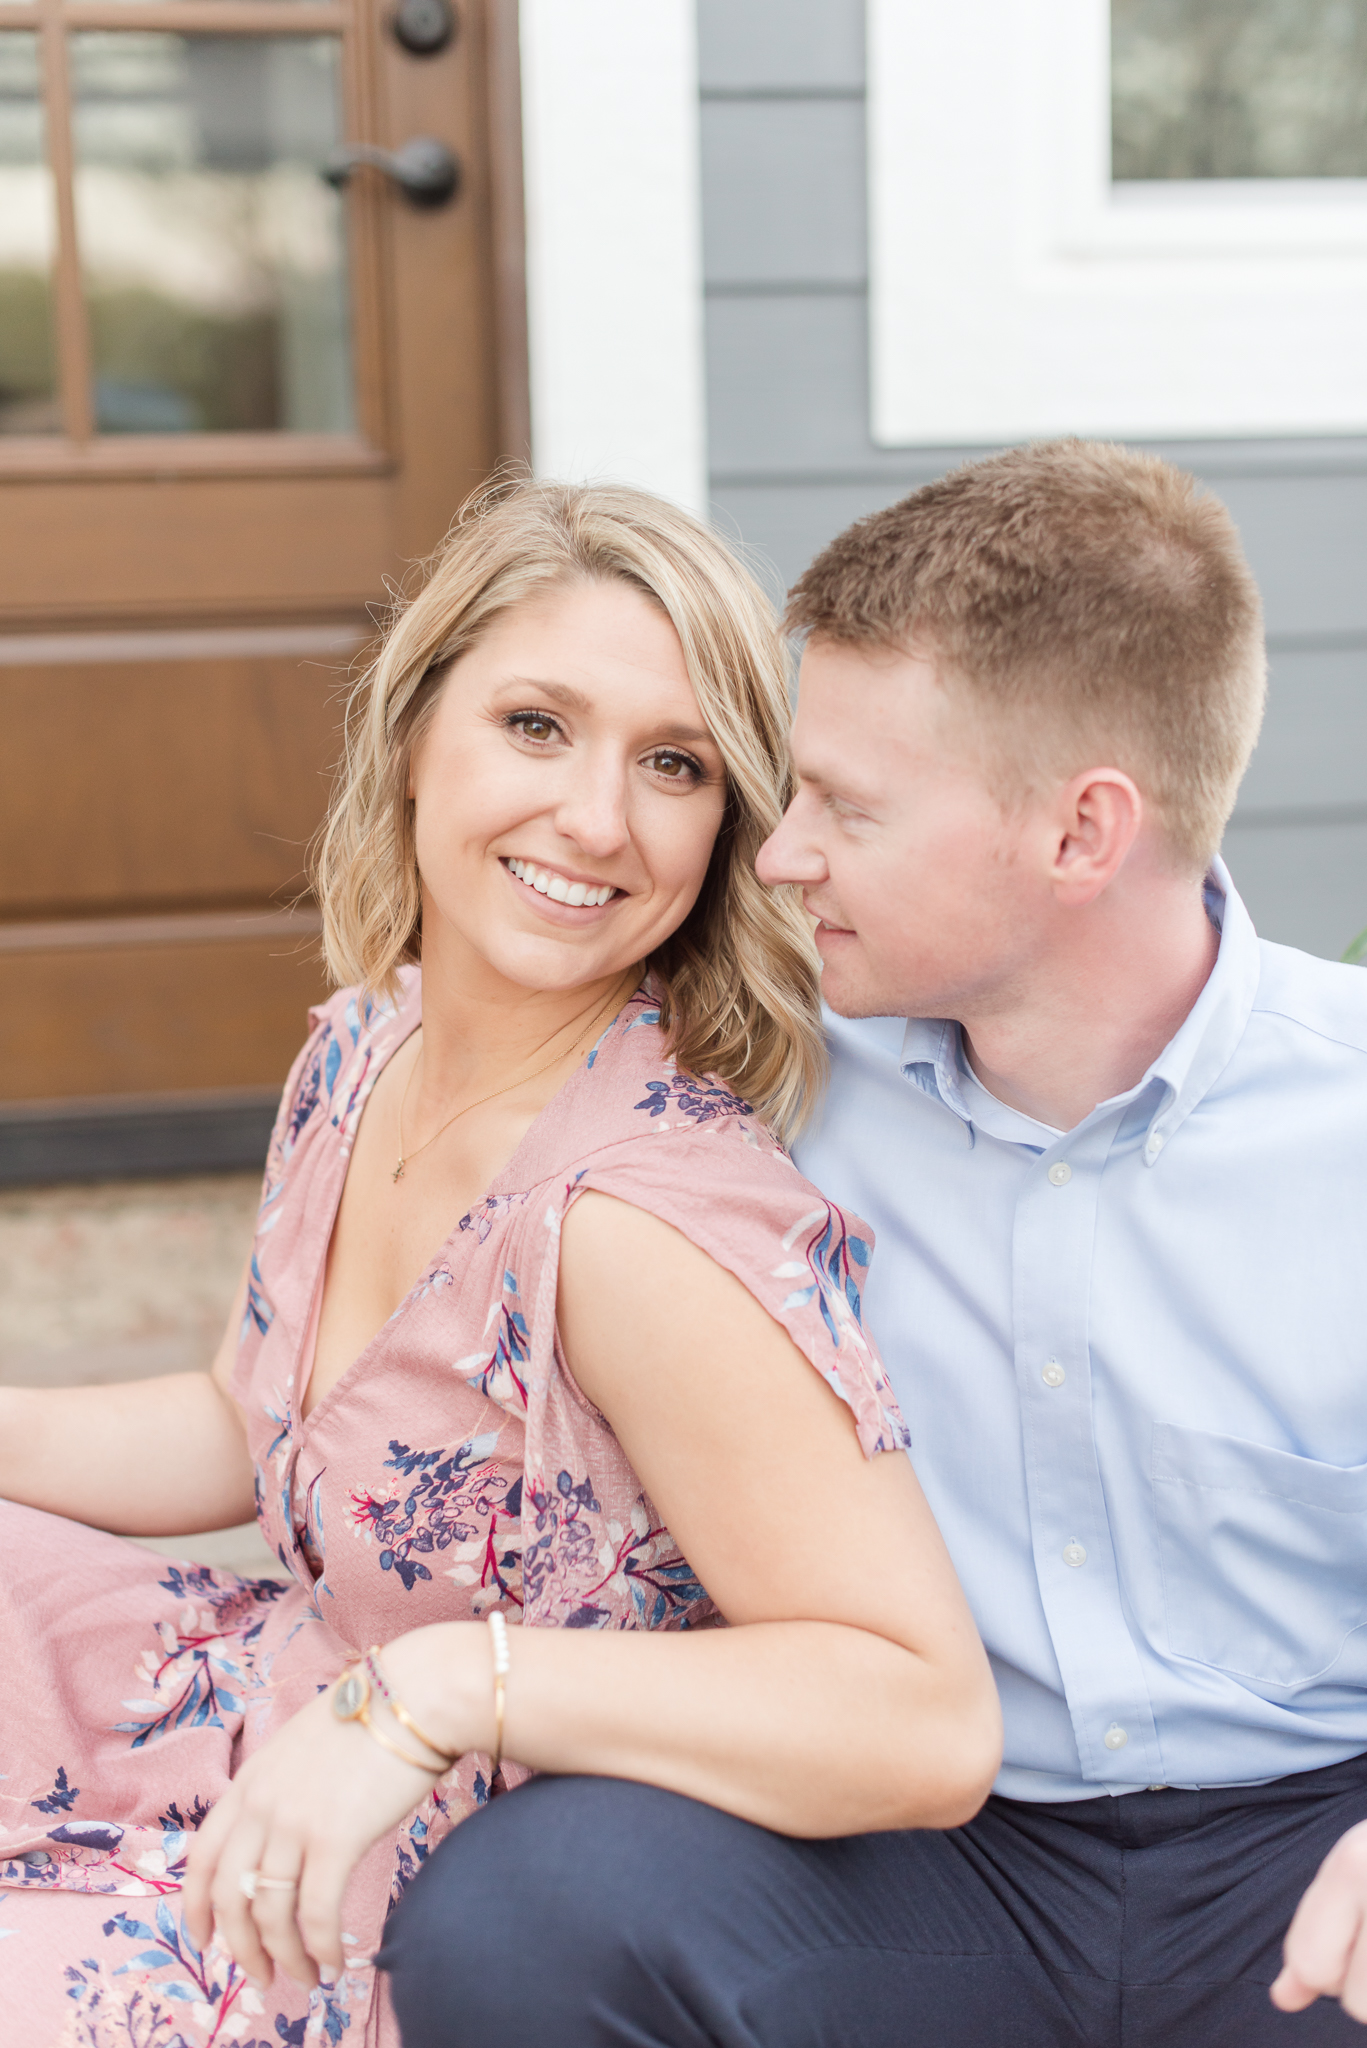 Richie Woods Nature Preserve and Mustard Seed Gardens Engagement Session Wedding Photos-53.jpg